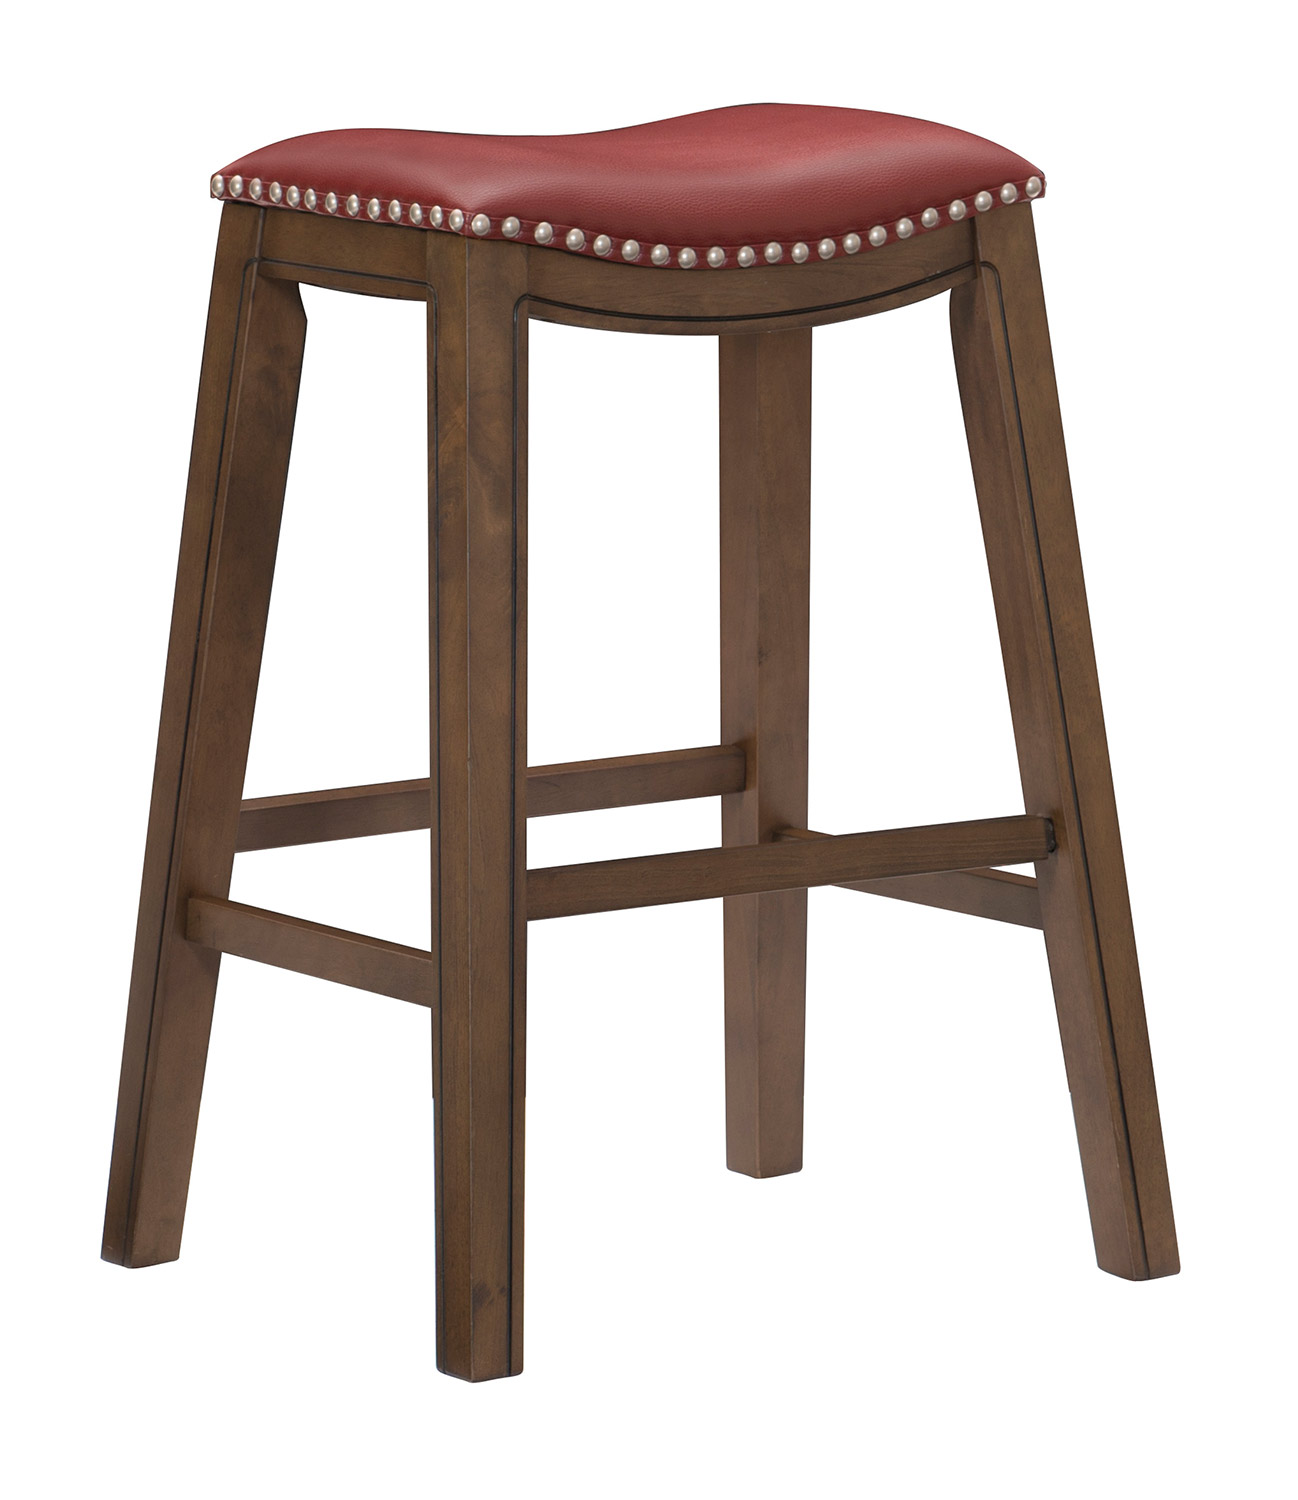 Homelegance 29 SH Stool - Red